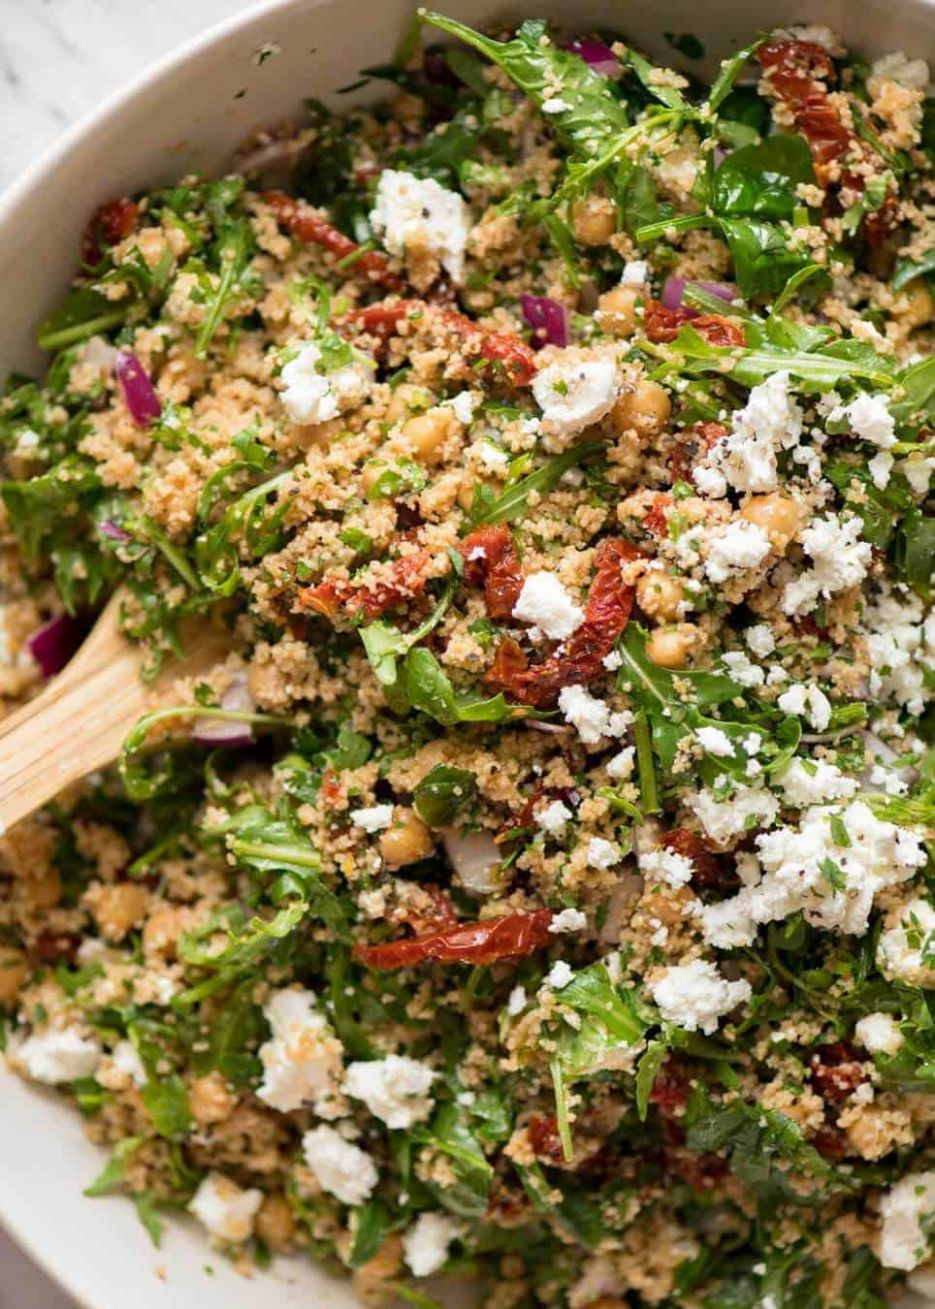 Couscous Salad with Sun Dried Tomato and Feta - Recipes Couscous Salad